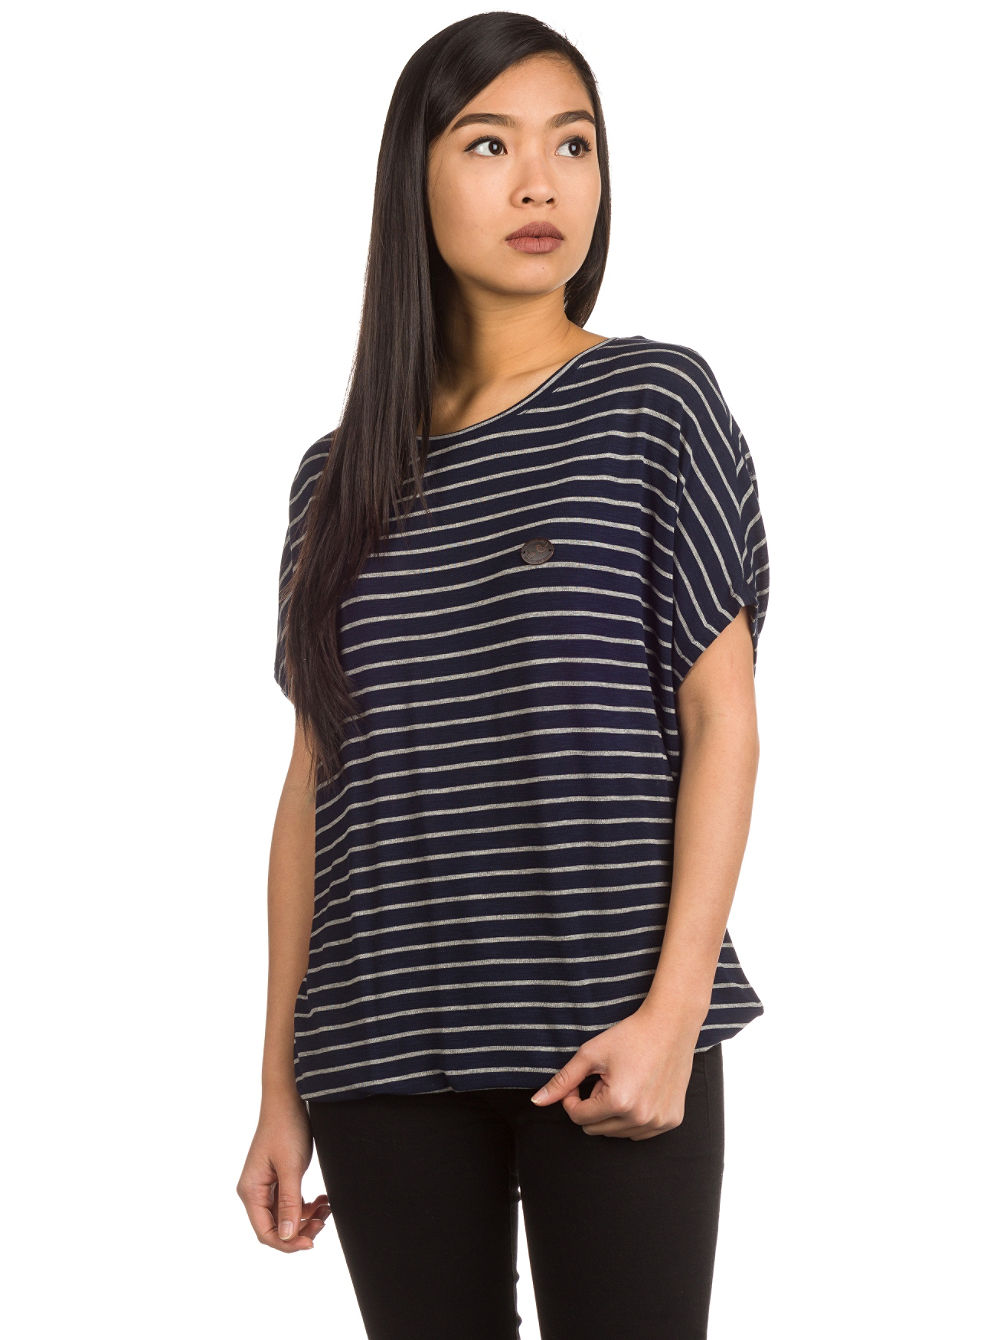 buy naketano striped girl iii t shirt online at blue. Black Bedroom Furniture Sets. Home Design Ideas